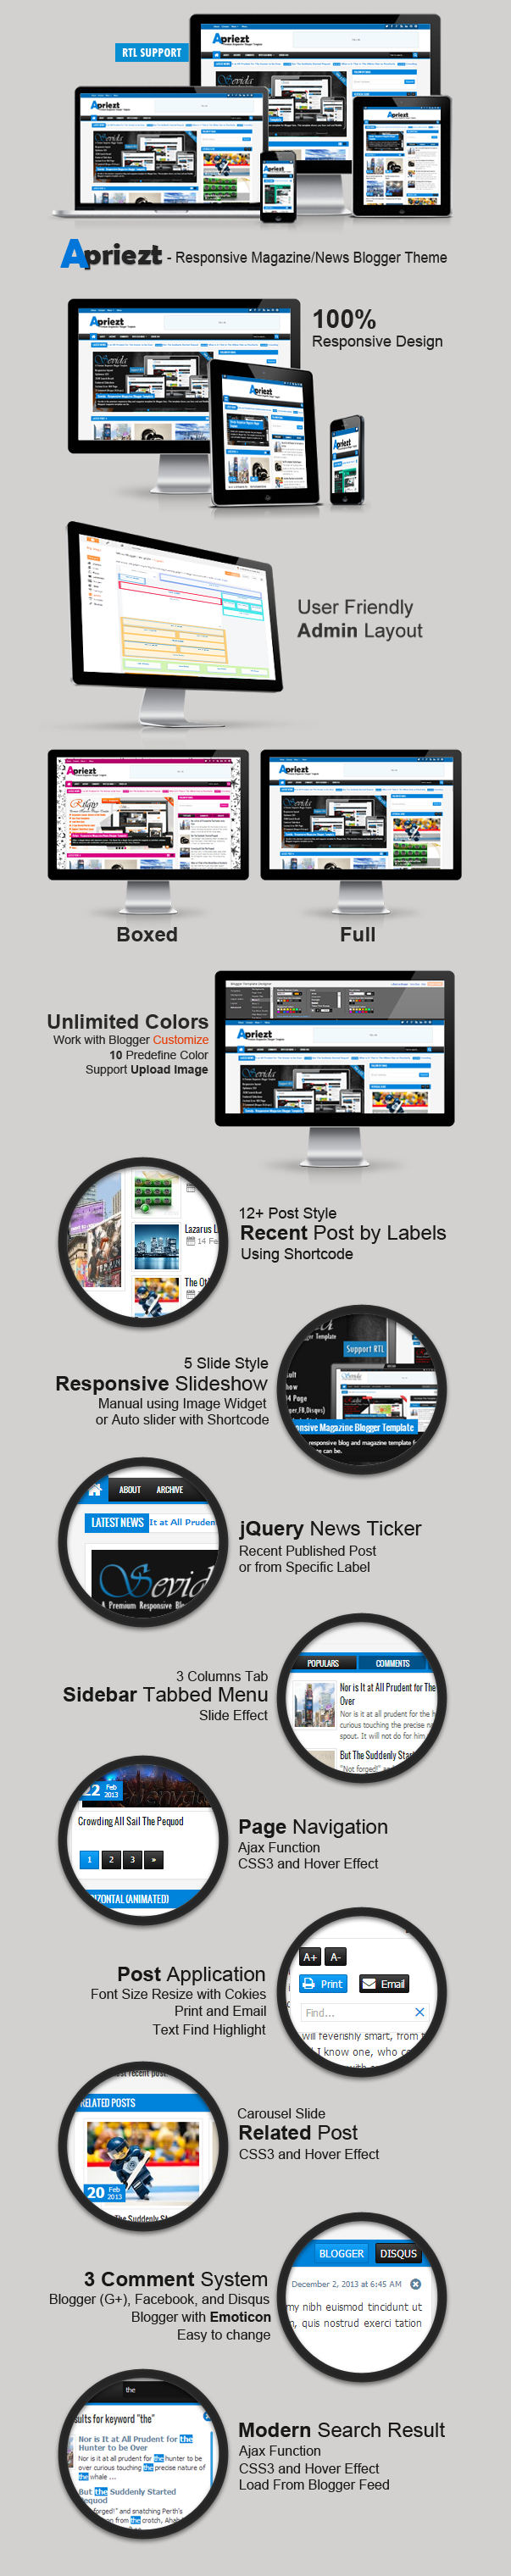 Apriezt Responsive Magazine/News Blogger Theme Features